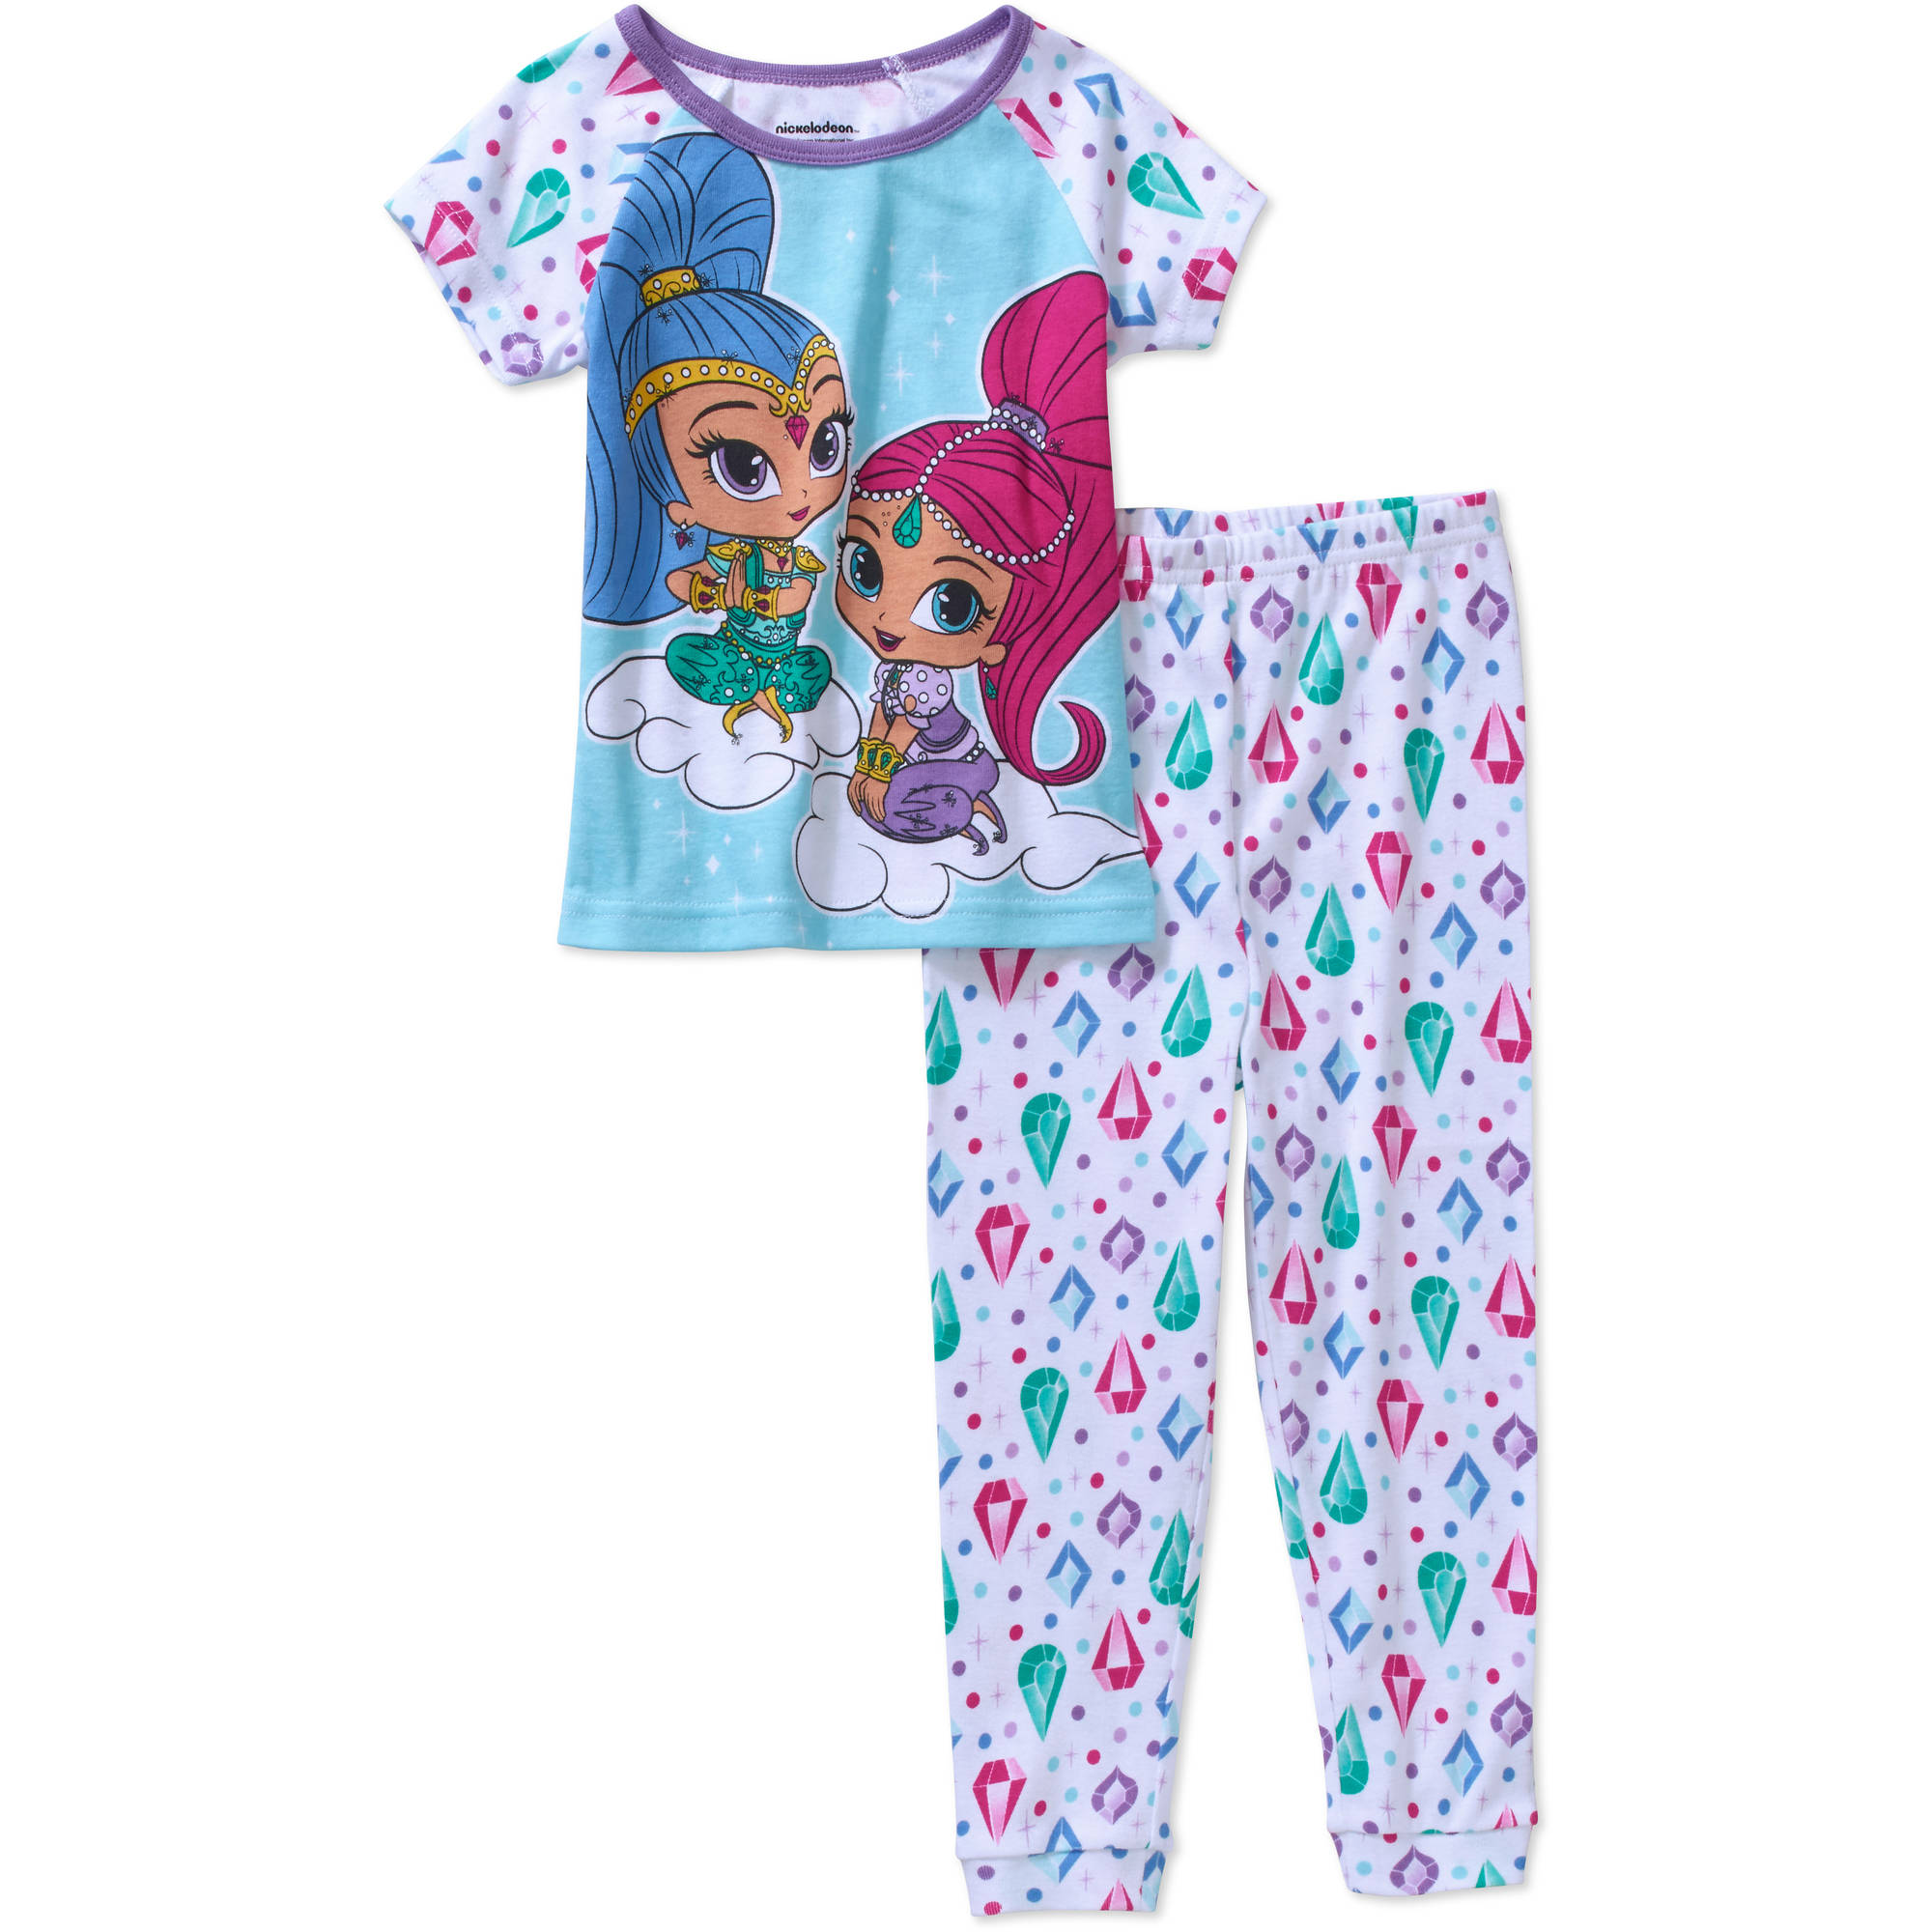 Shimmer And Shine Toddler Girls' Licensed Cotton Pajama Sleepwear Set